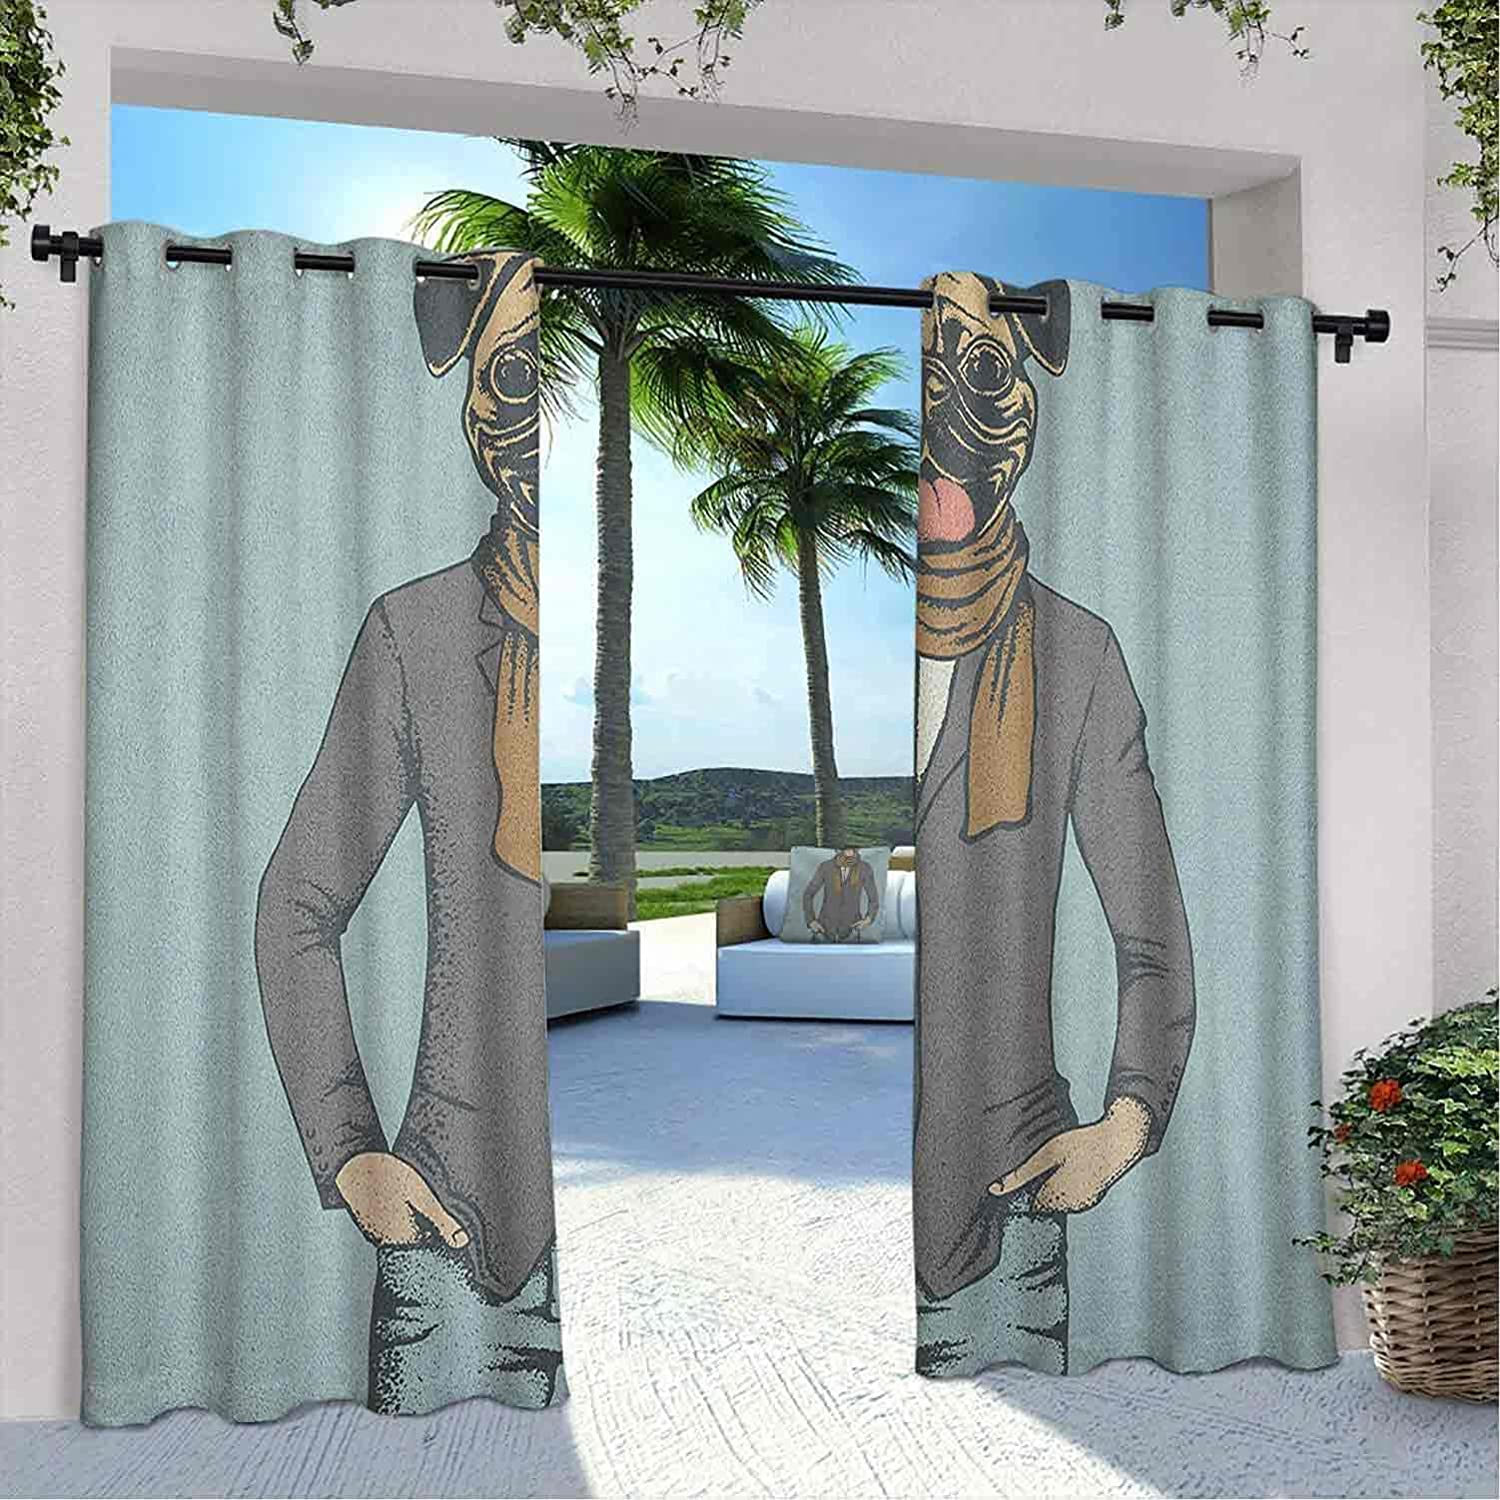 Ranking TOP4 Max 54% OFF Outdoor Privacy Pug Curtain Abstract Image a with Dog Human of